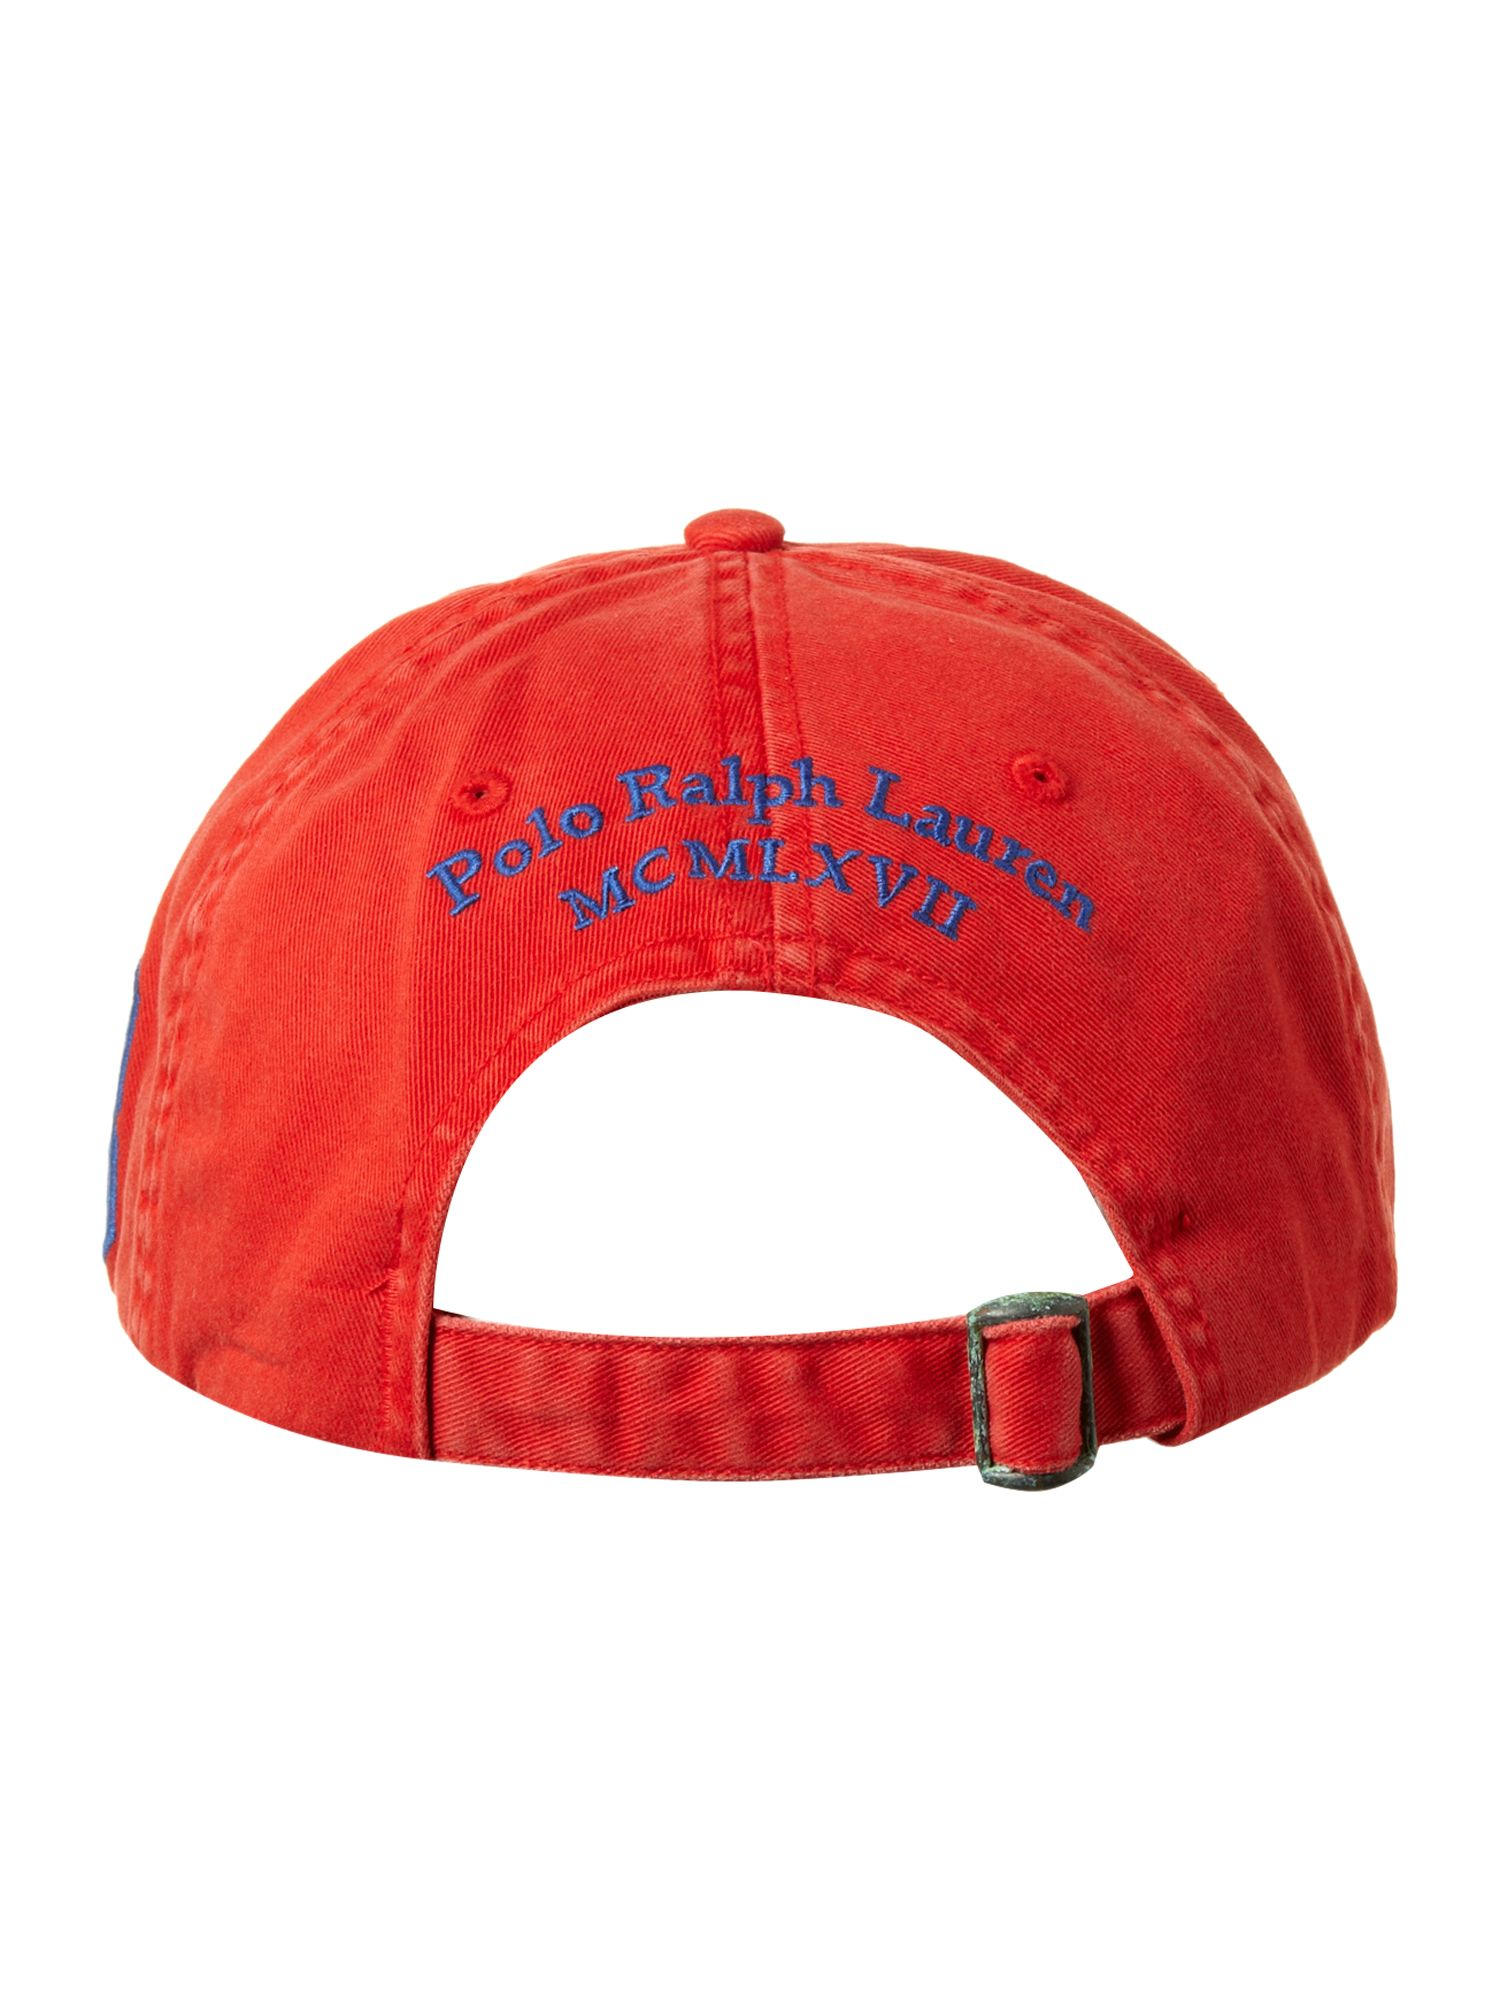 Large polo pony cap